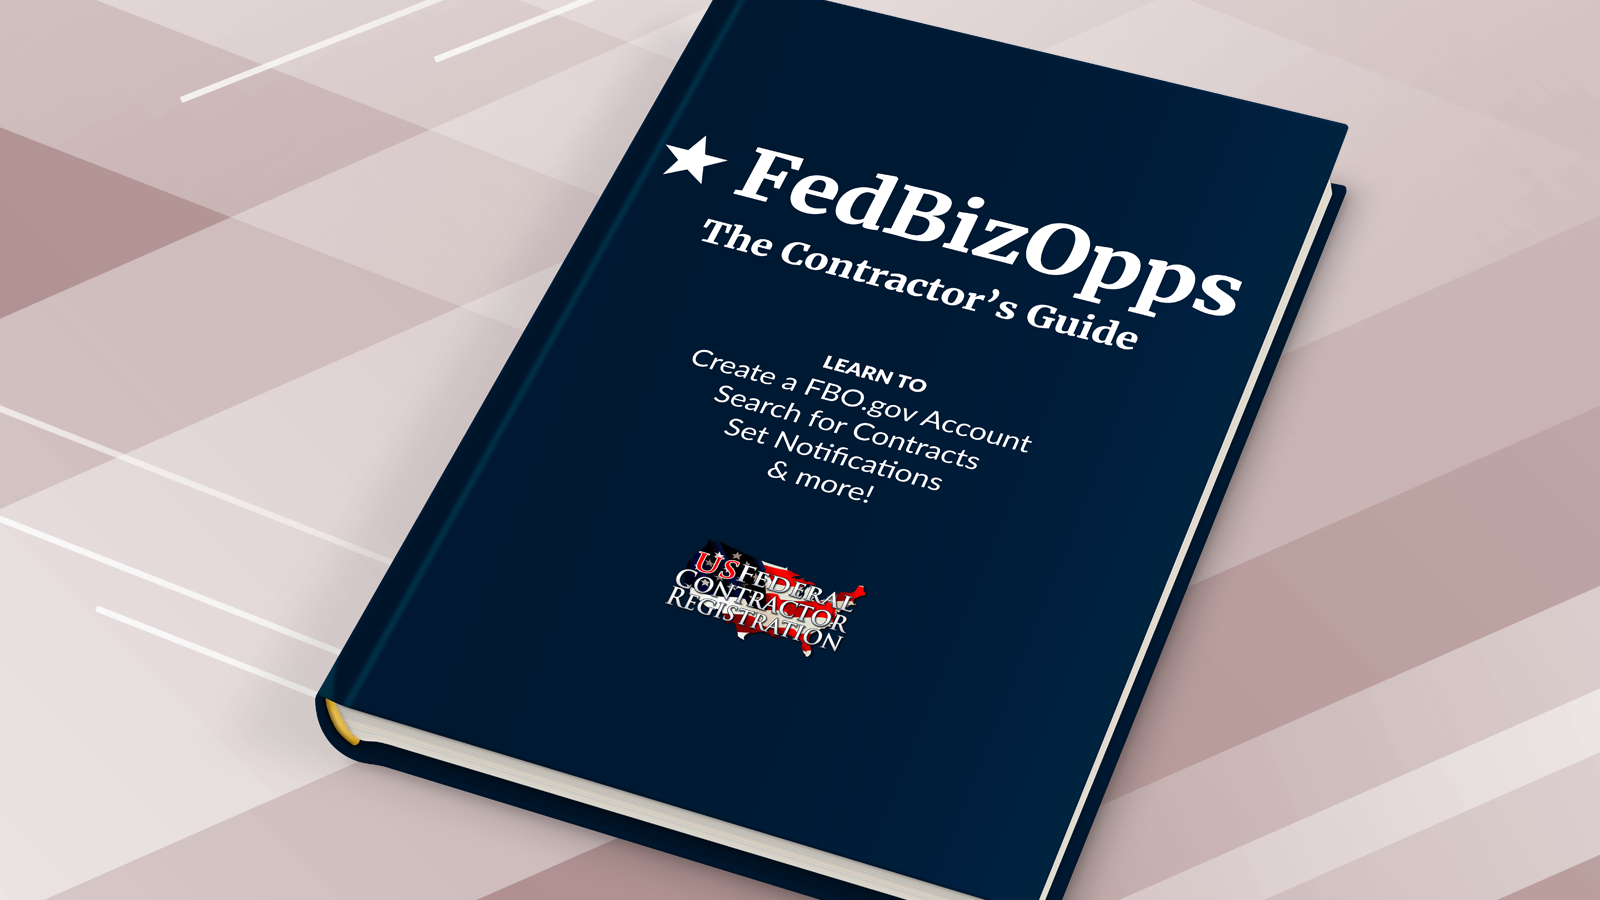 Featured Image for FedBizOpps the Complete Guide